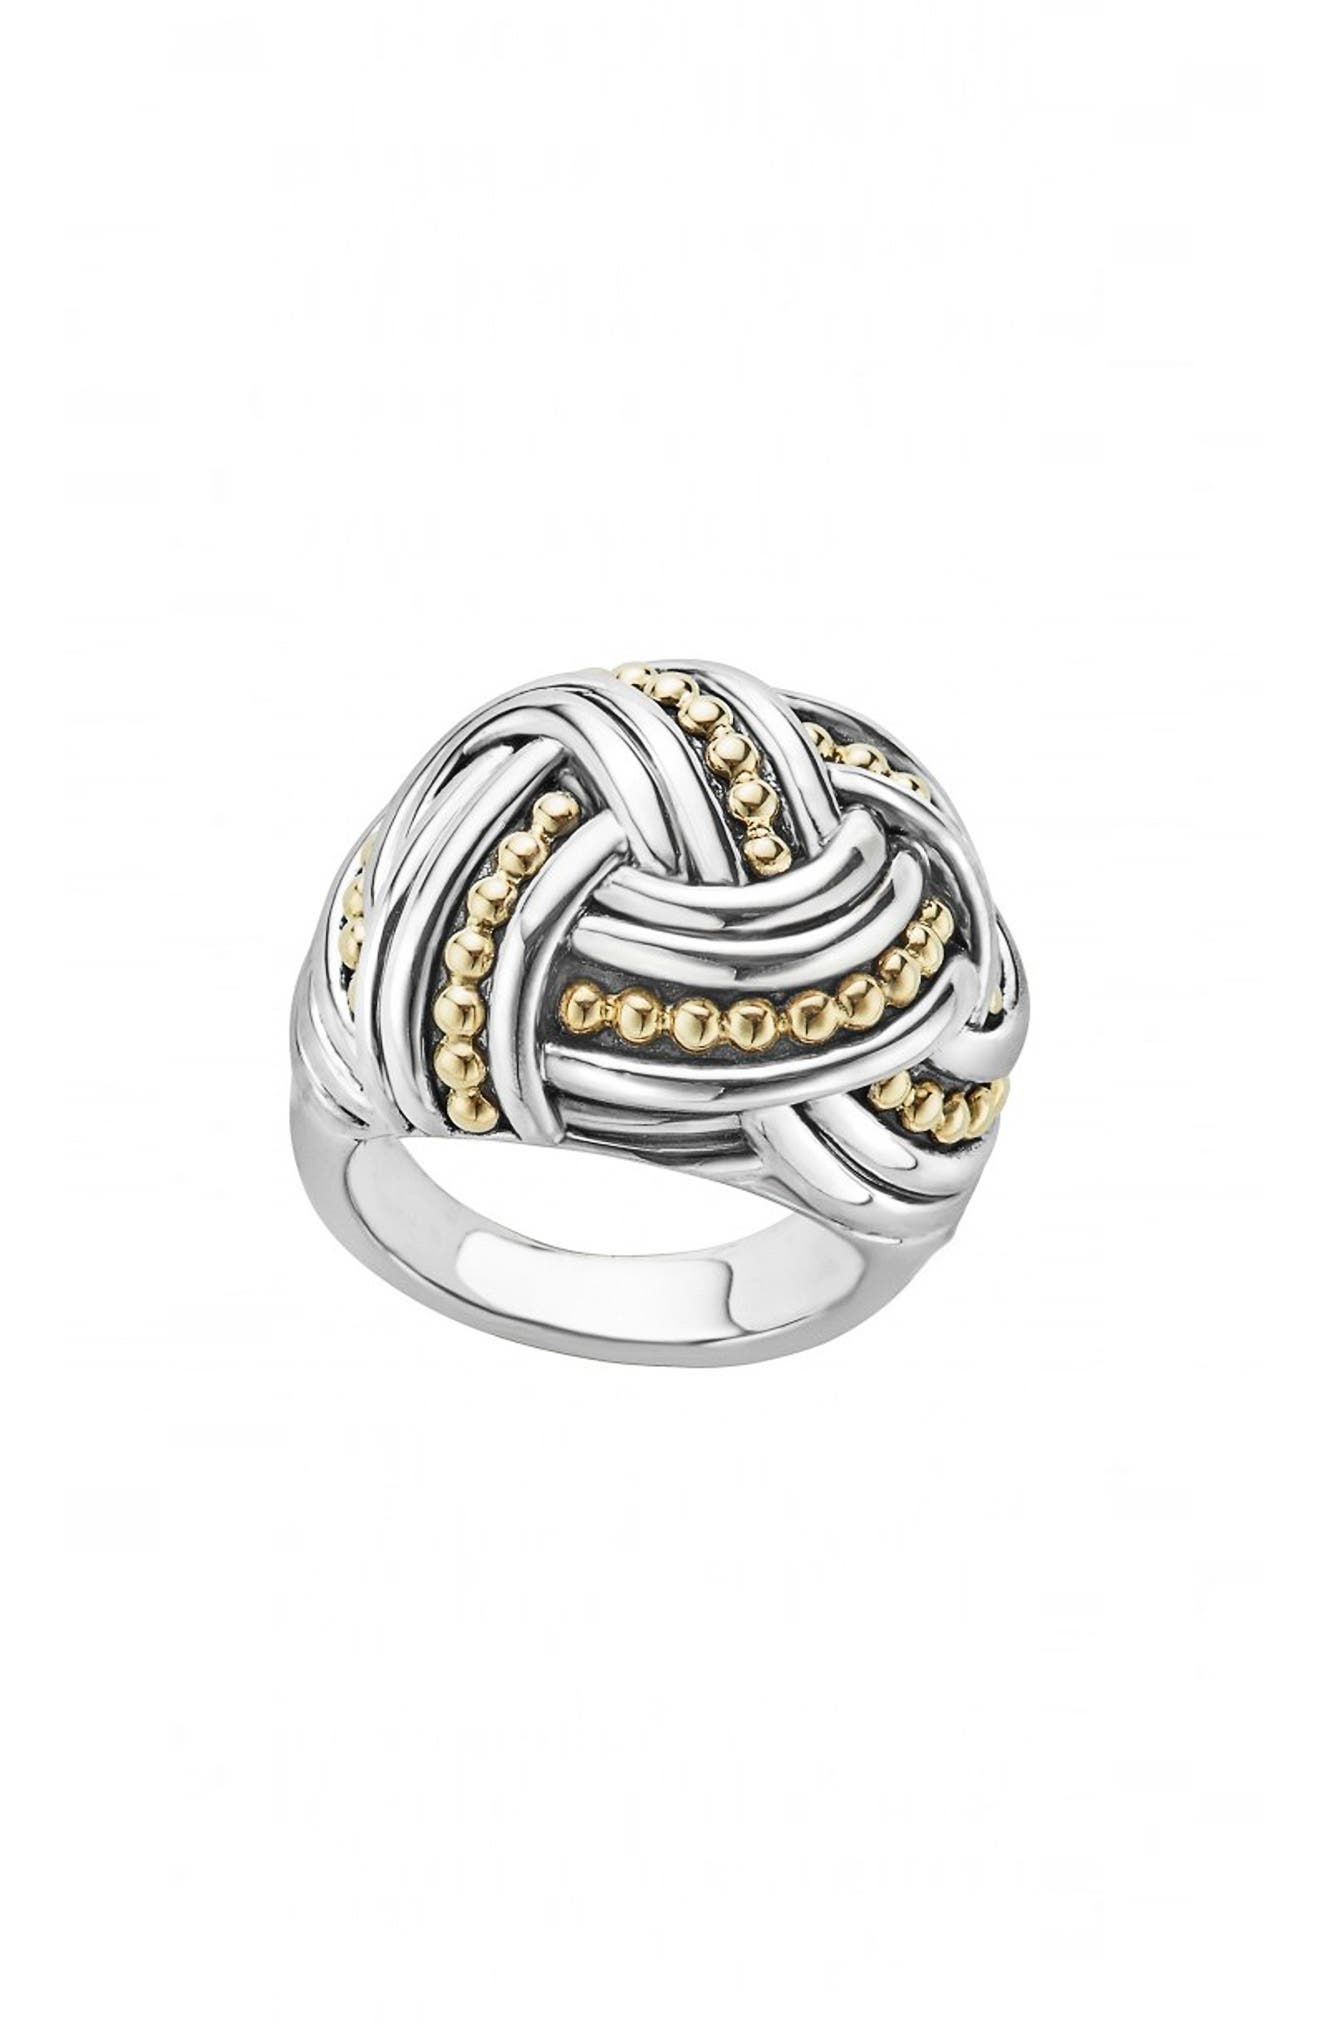 Torsade Large Rounded Rectangle Ring,                             Main thumbnail 1, color,                             SILVER/ GOLD